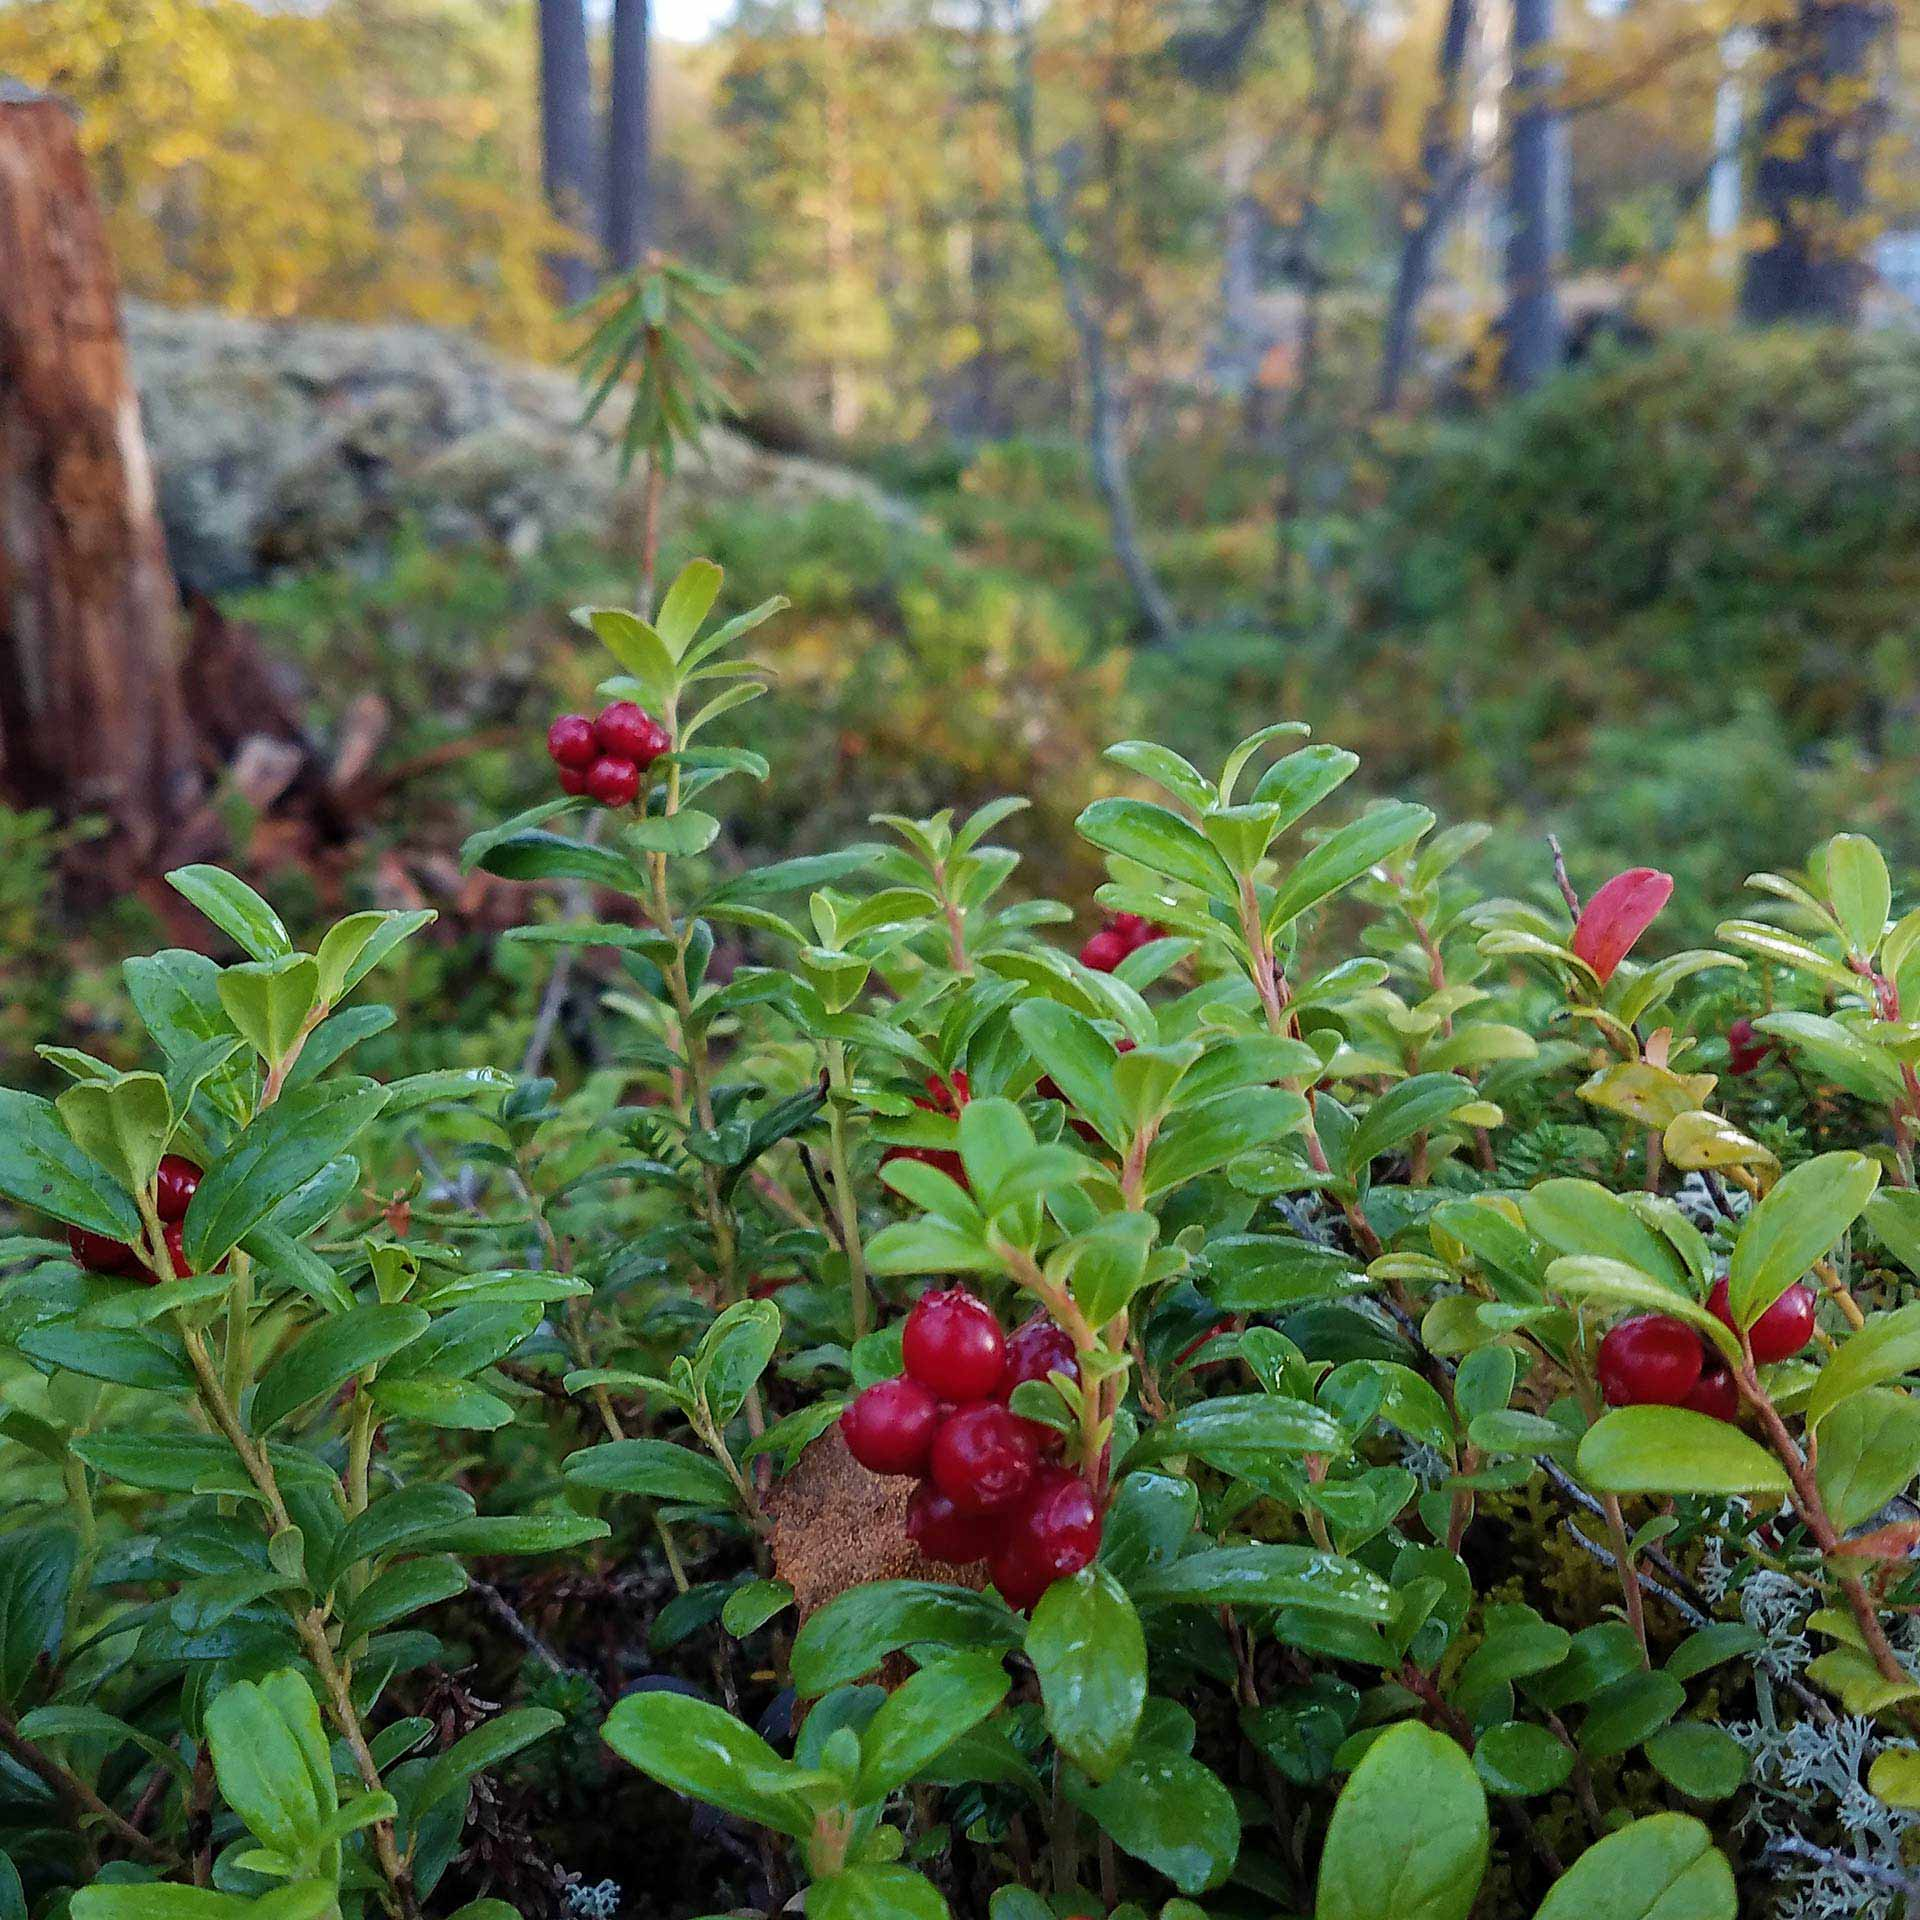 Ligonberries naturally carpeting the floor of the forest in Finland.